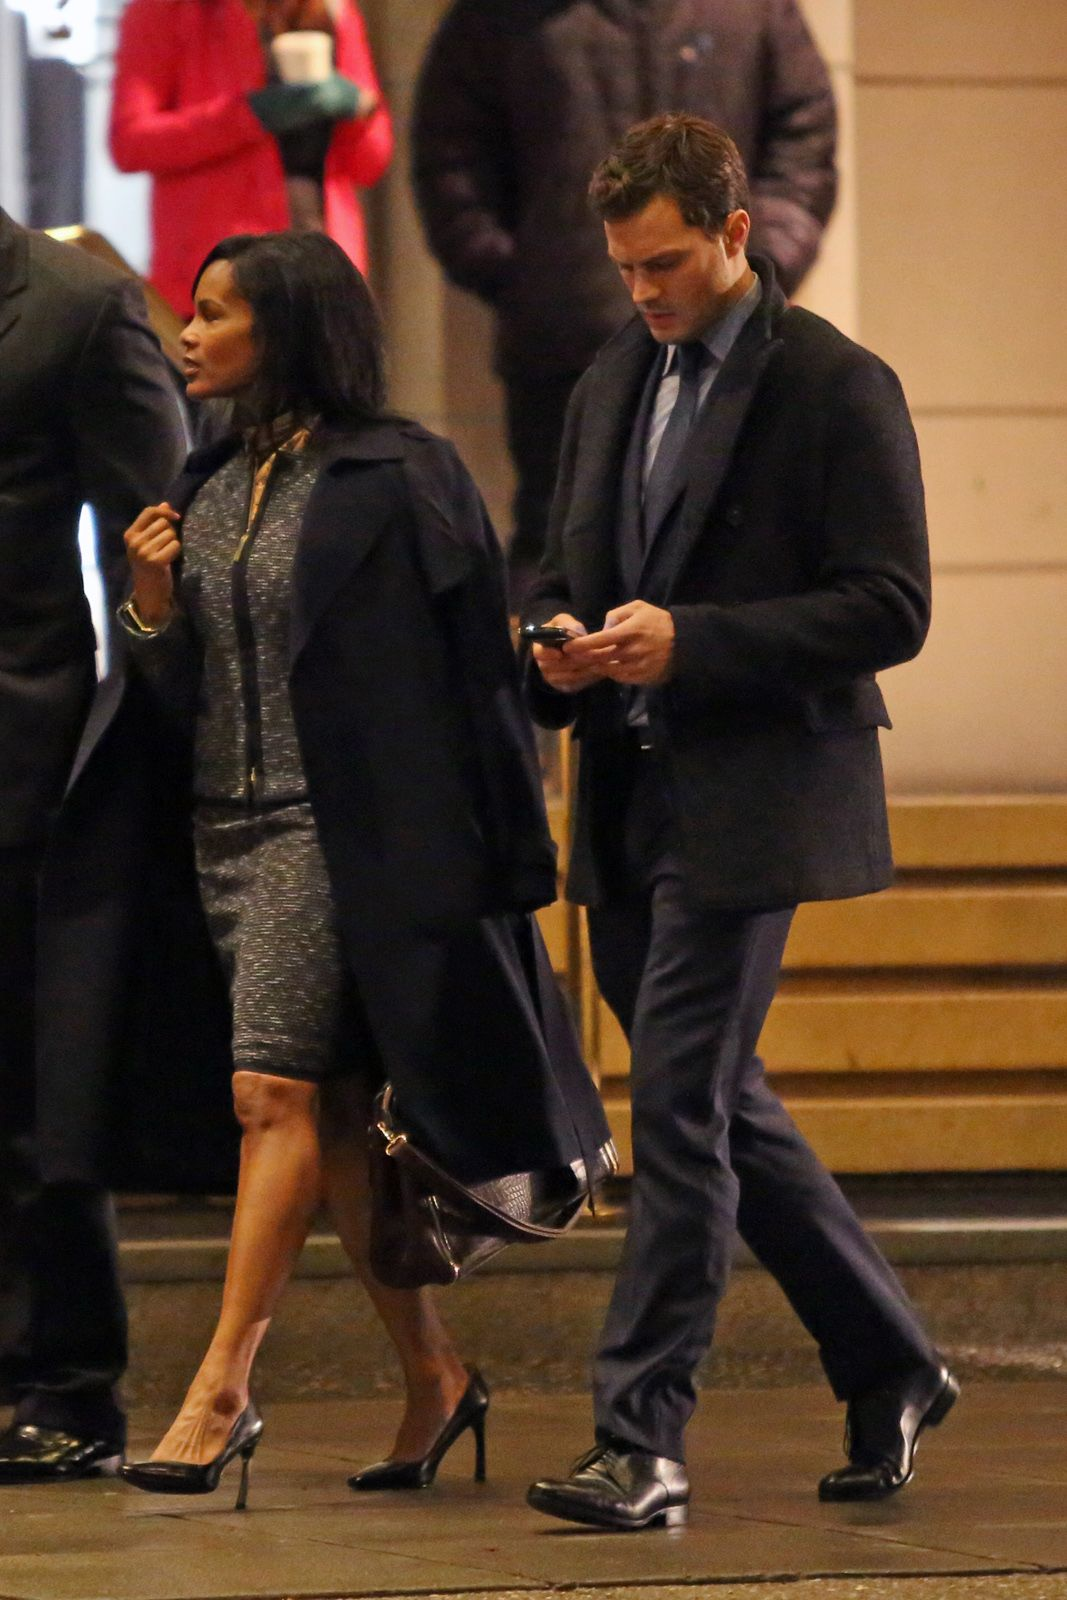 Forum on this topic: Murray Westgate, robinne-lee/